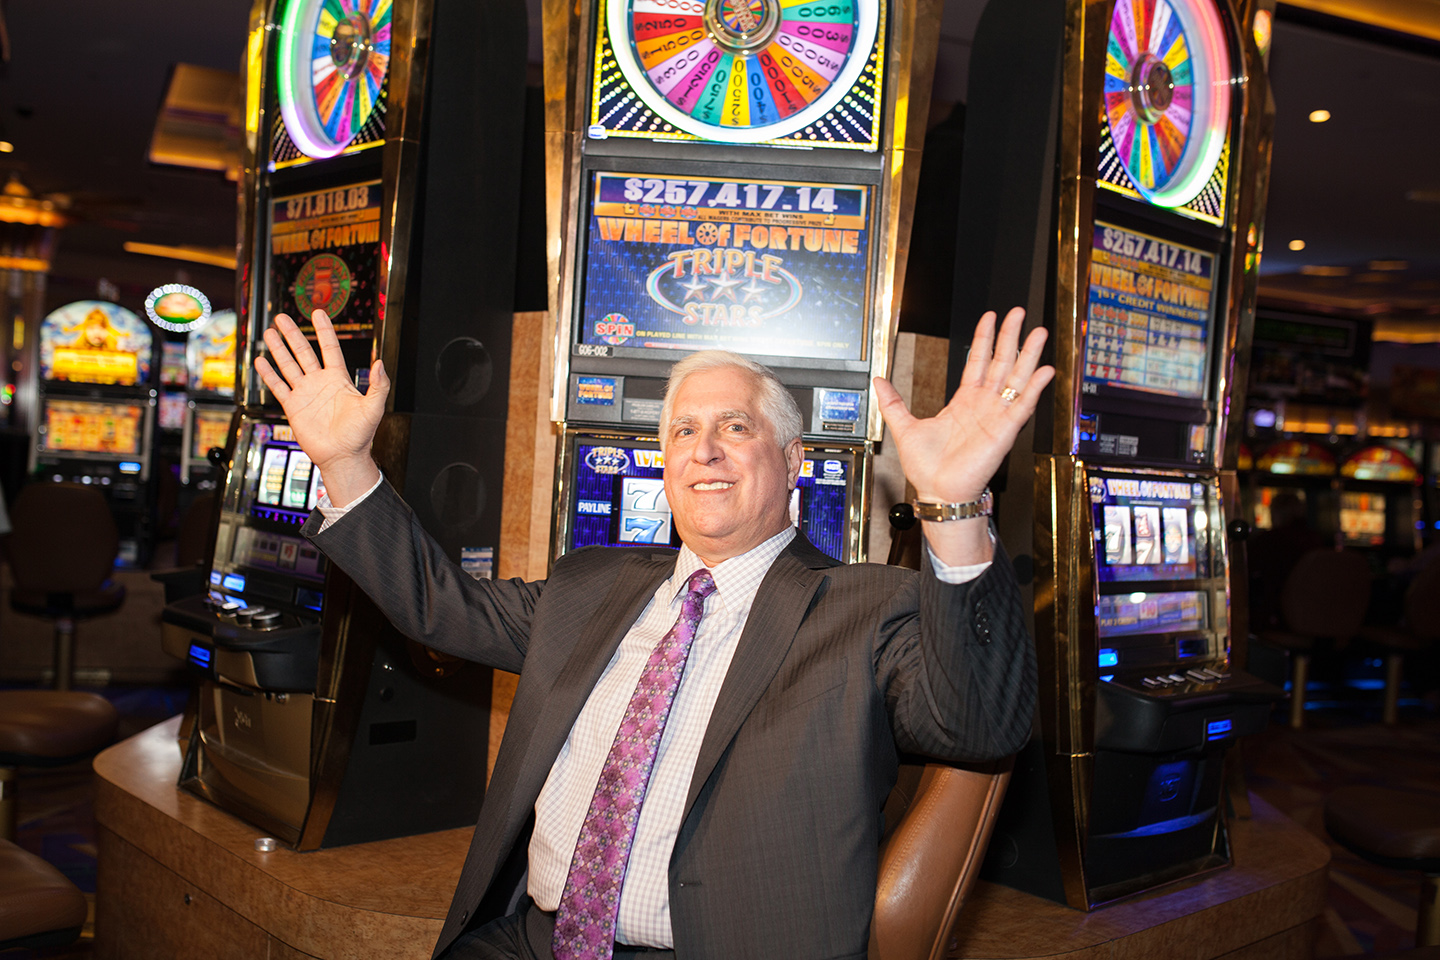 Howard G. Wins $1.4 Million at Empire City Casino